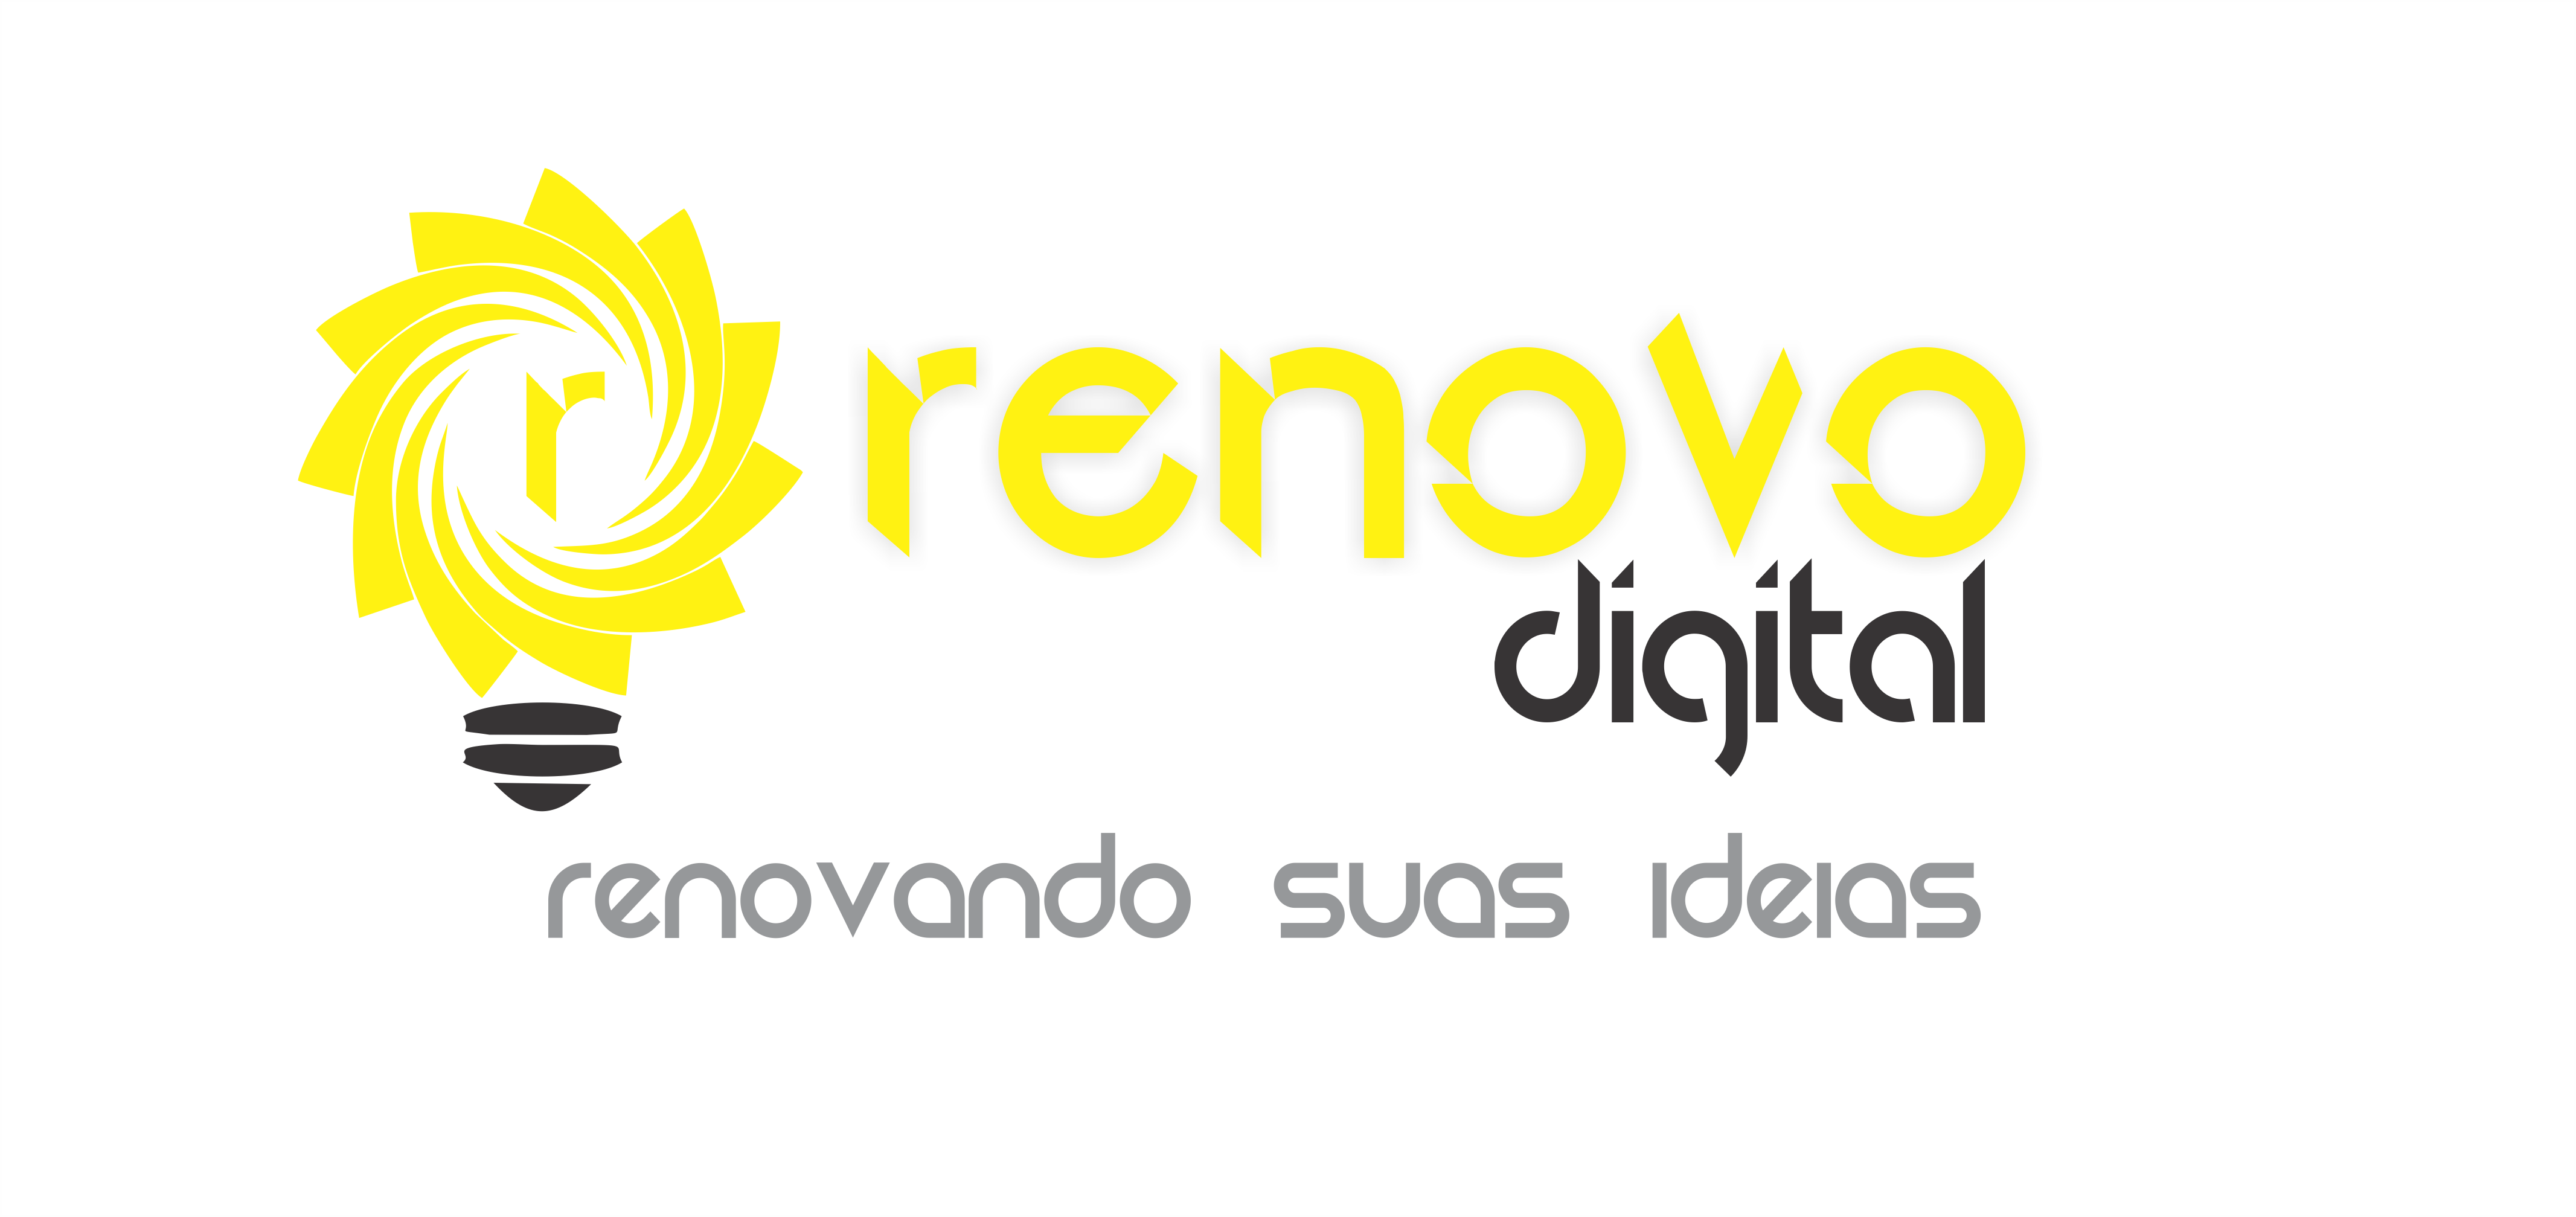 Renovo digital